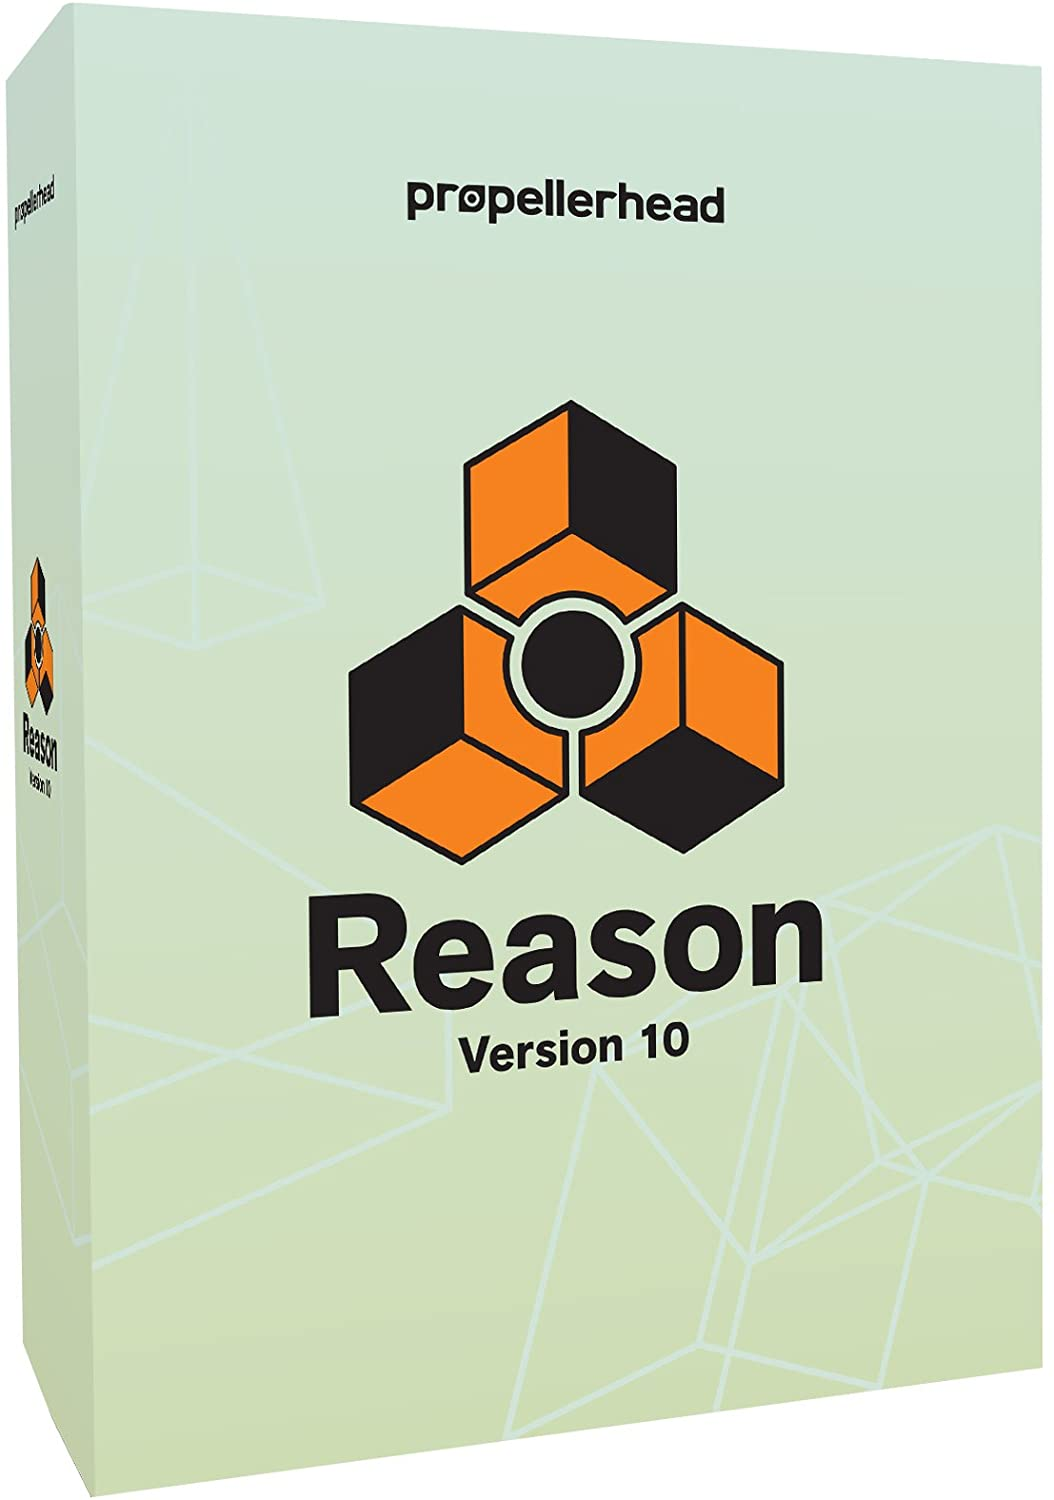 front facing Propellerhead Reason 10